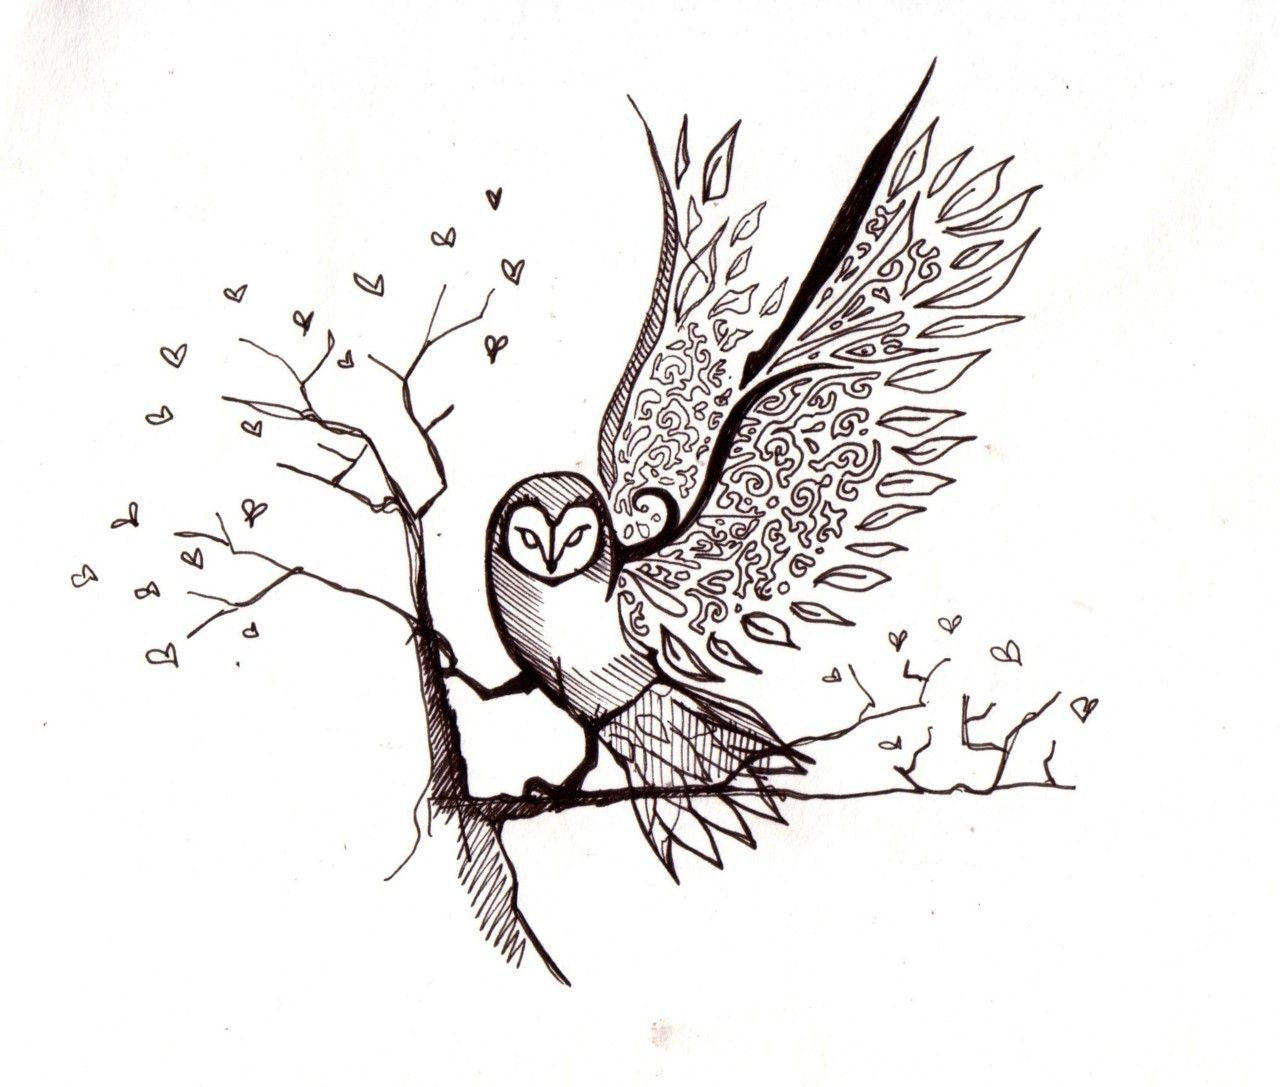 Flying Owl Sketch images | drawing | Pinterest | Owl ...